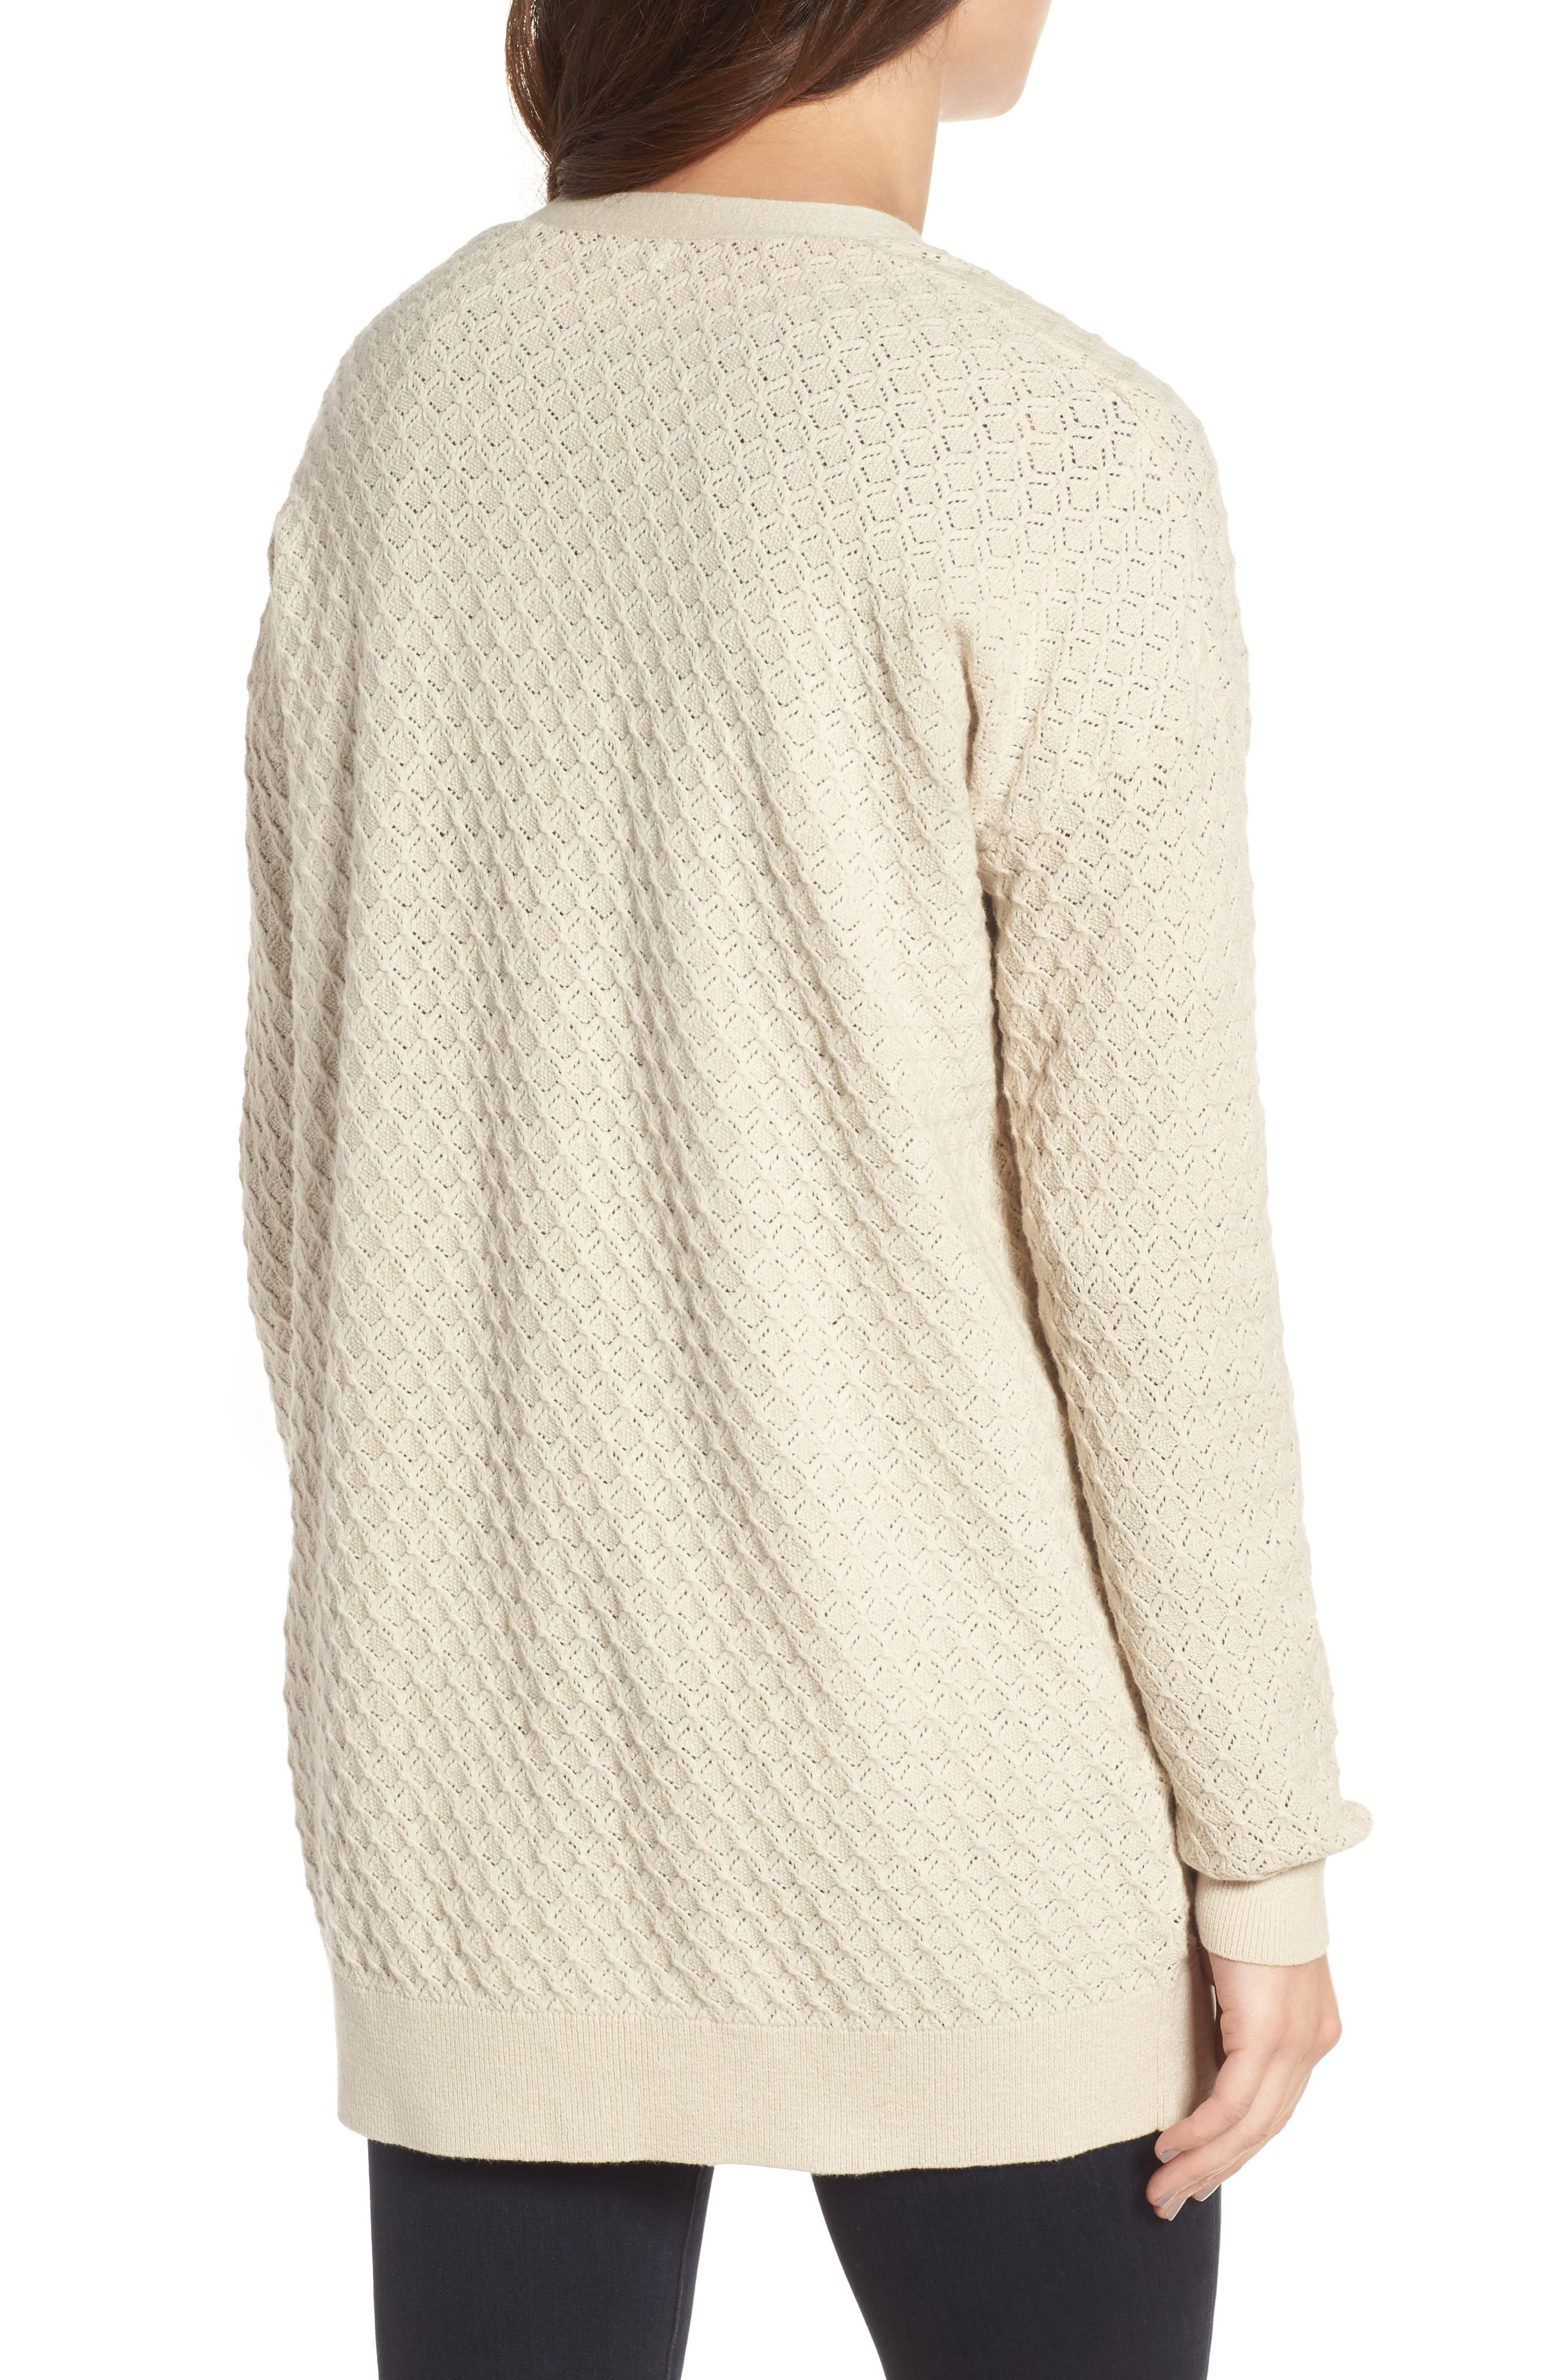 Pointelle Cardigan Sweater,                             Alternate thumbnail 6, color,